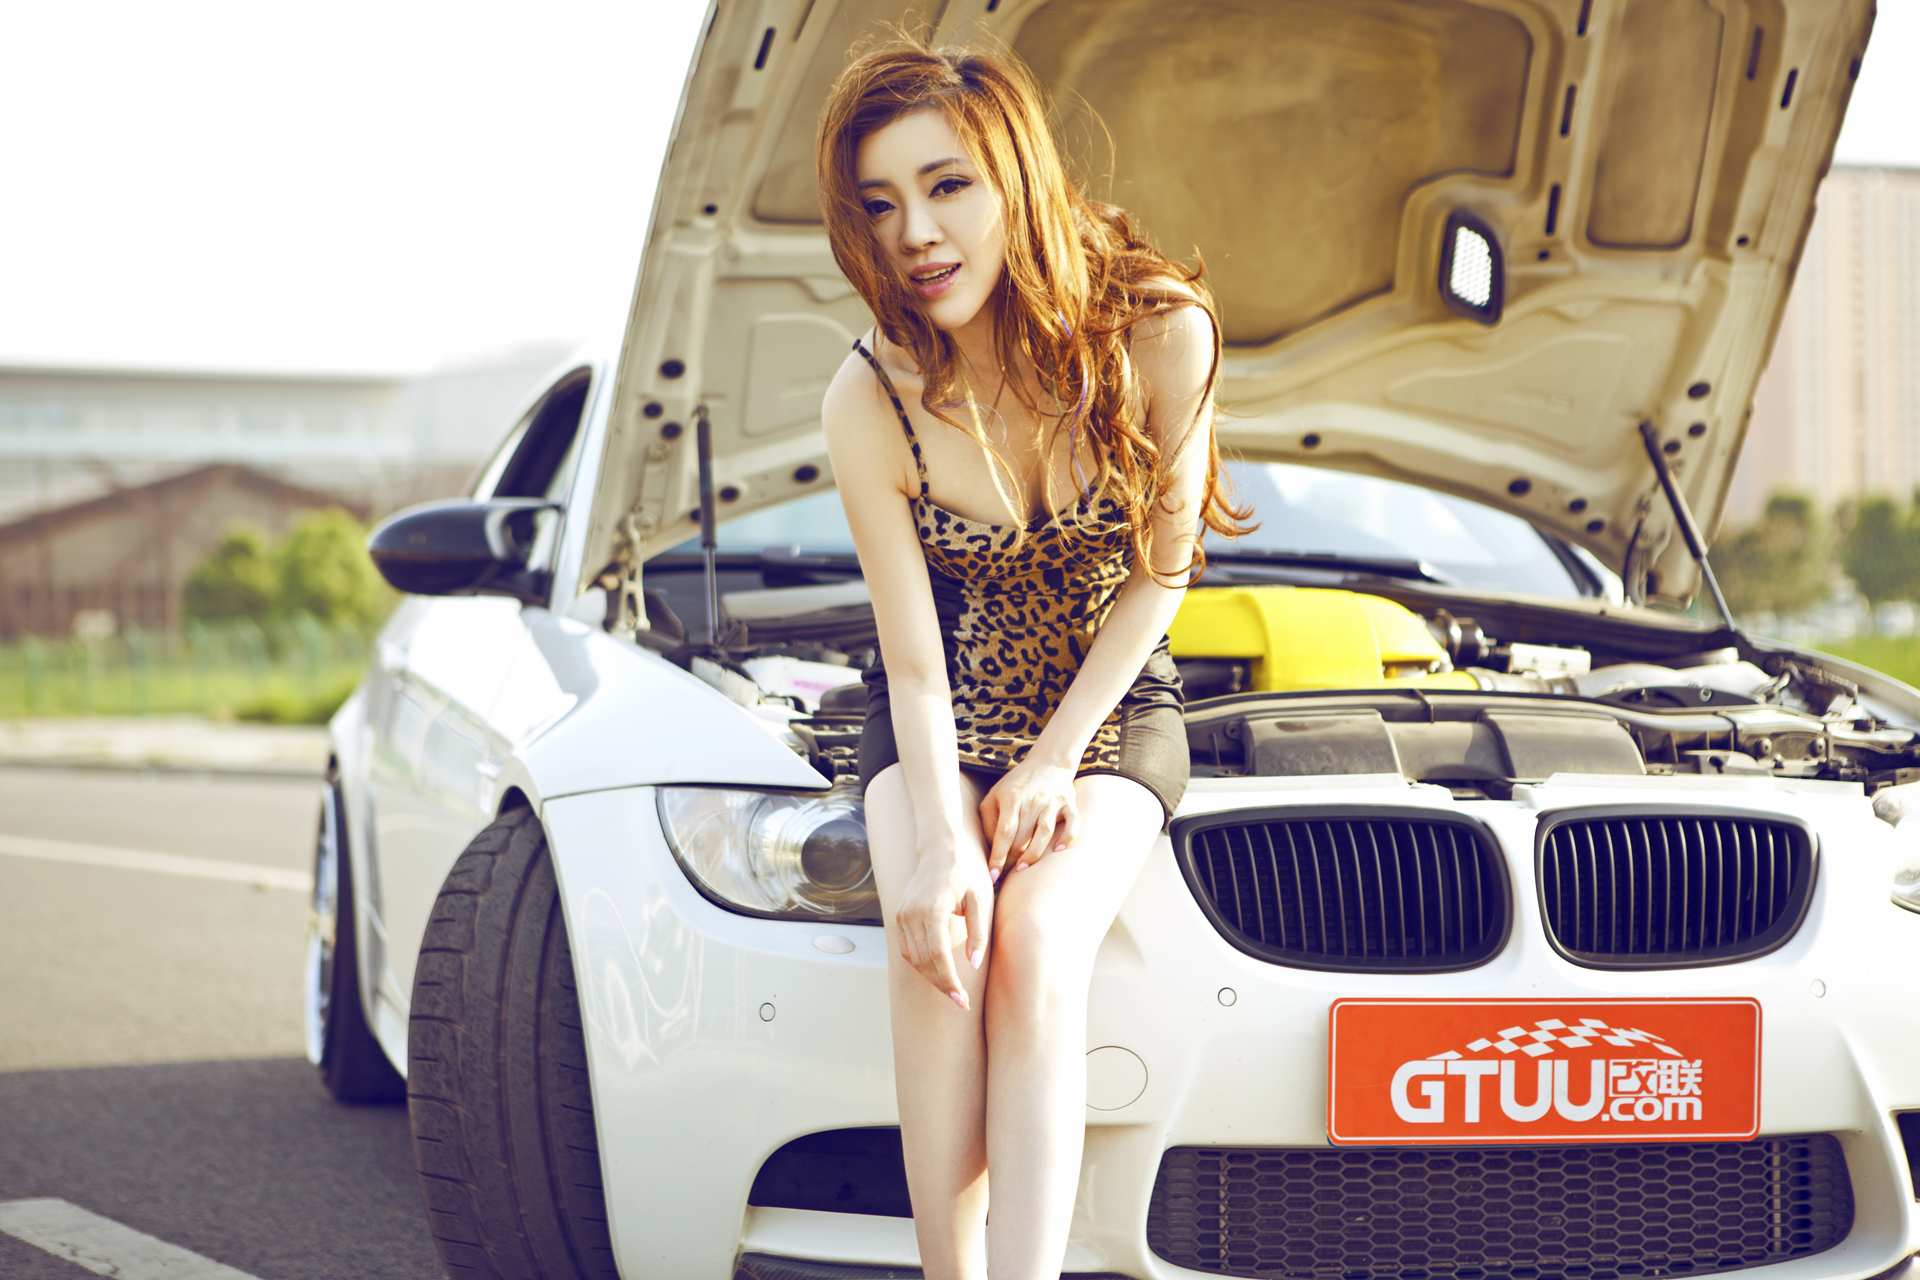 Bmw M3 Presents Chinese Redhead Or Is It The Other Way